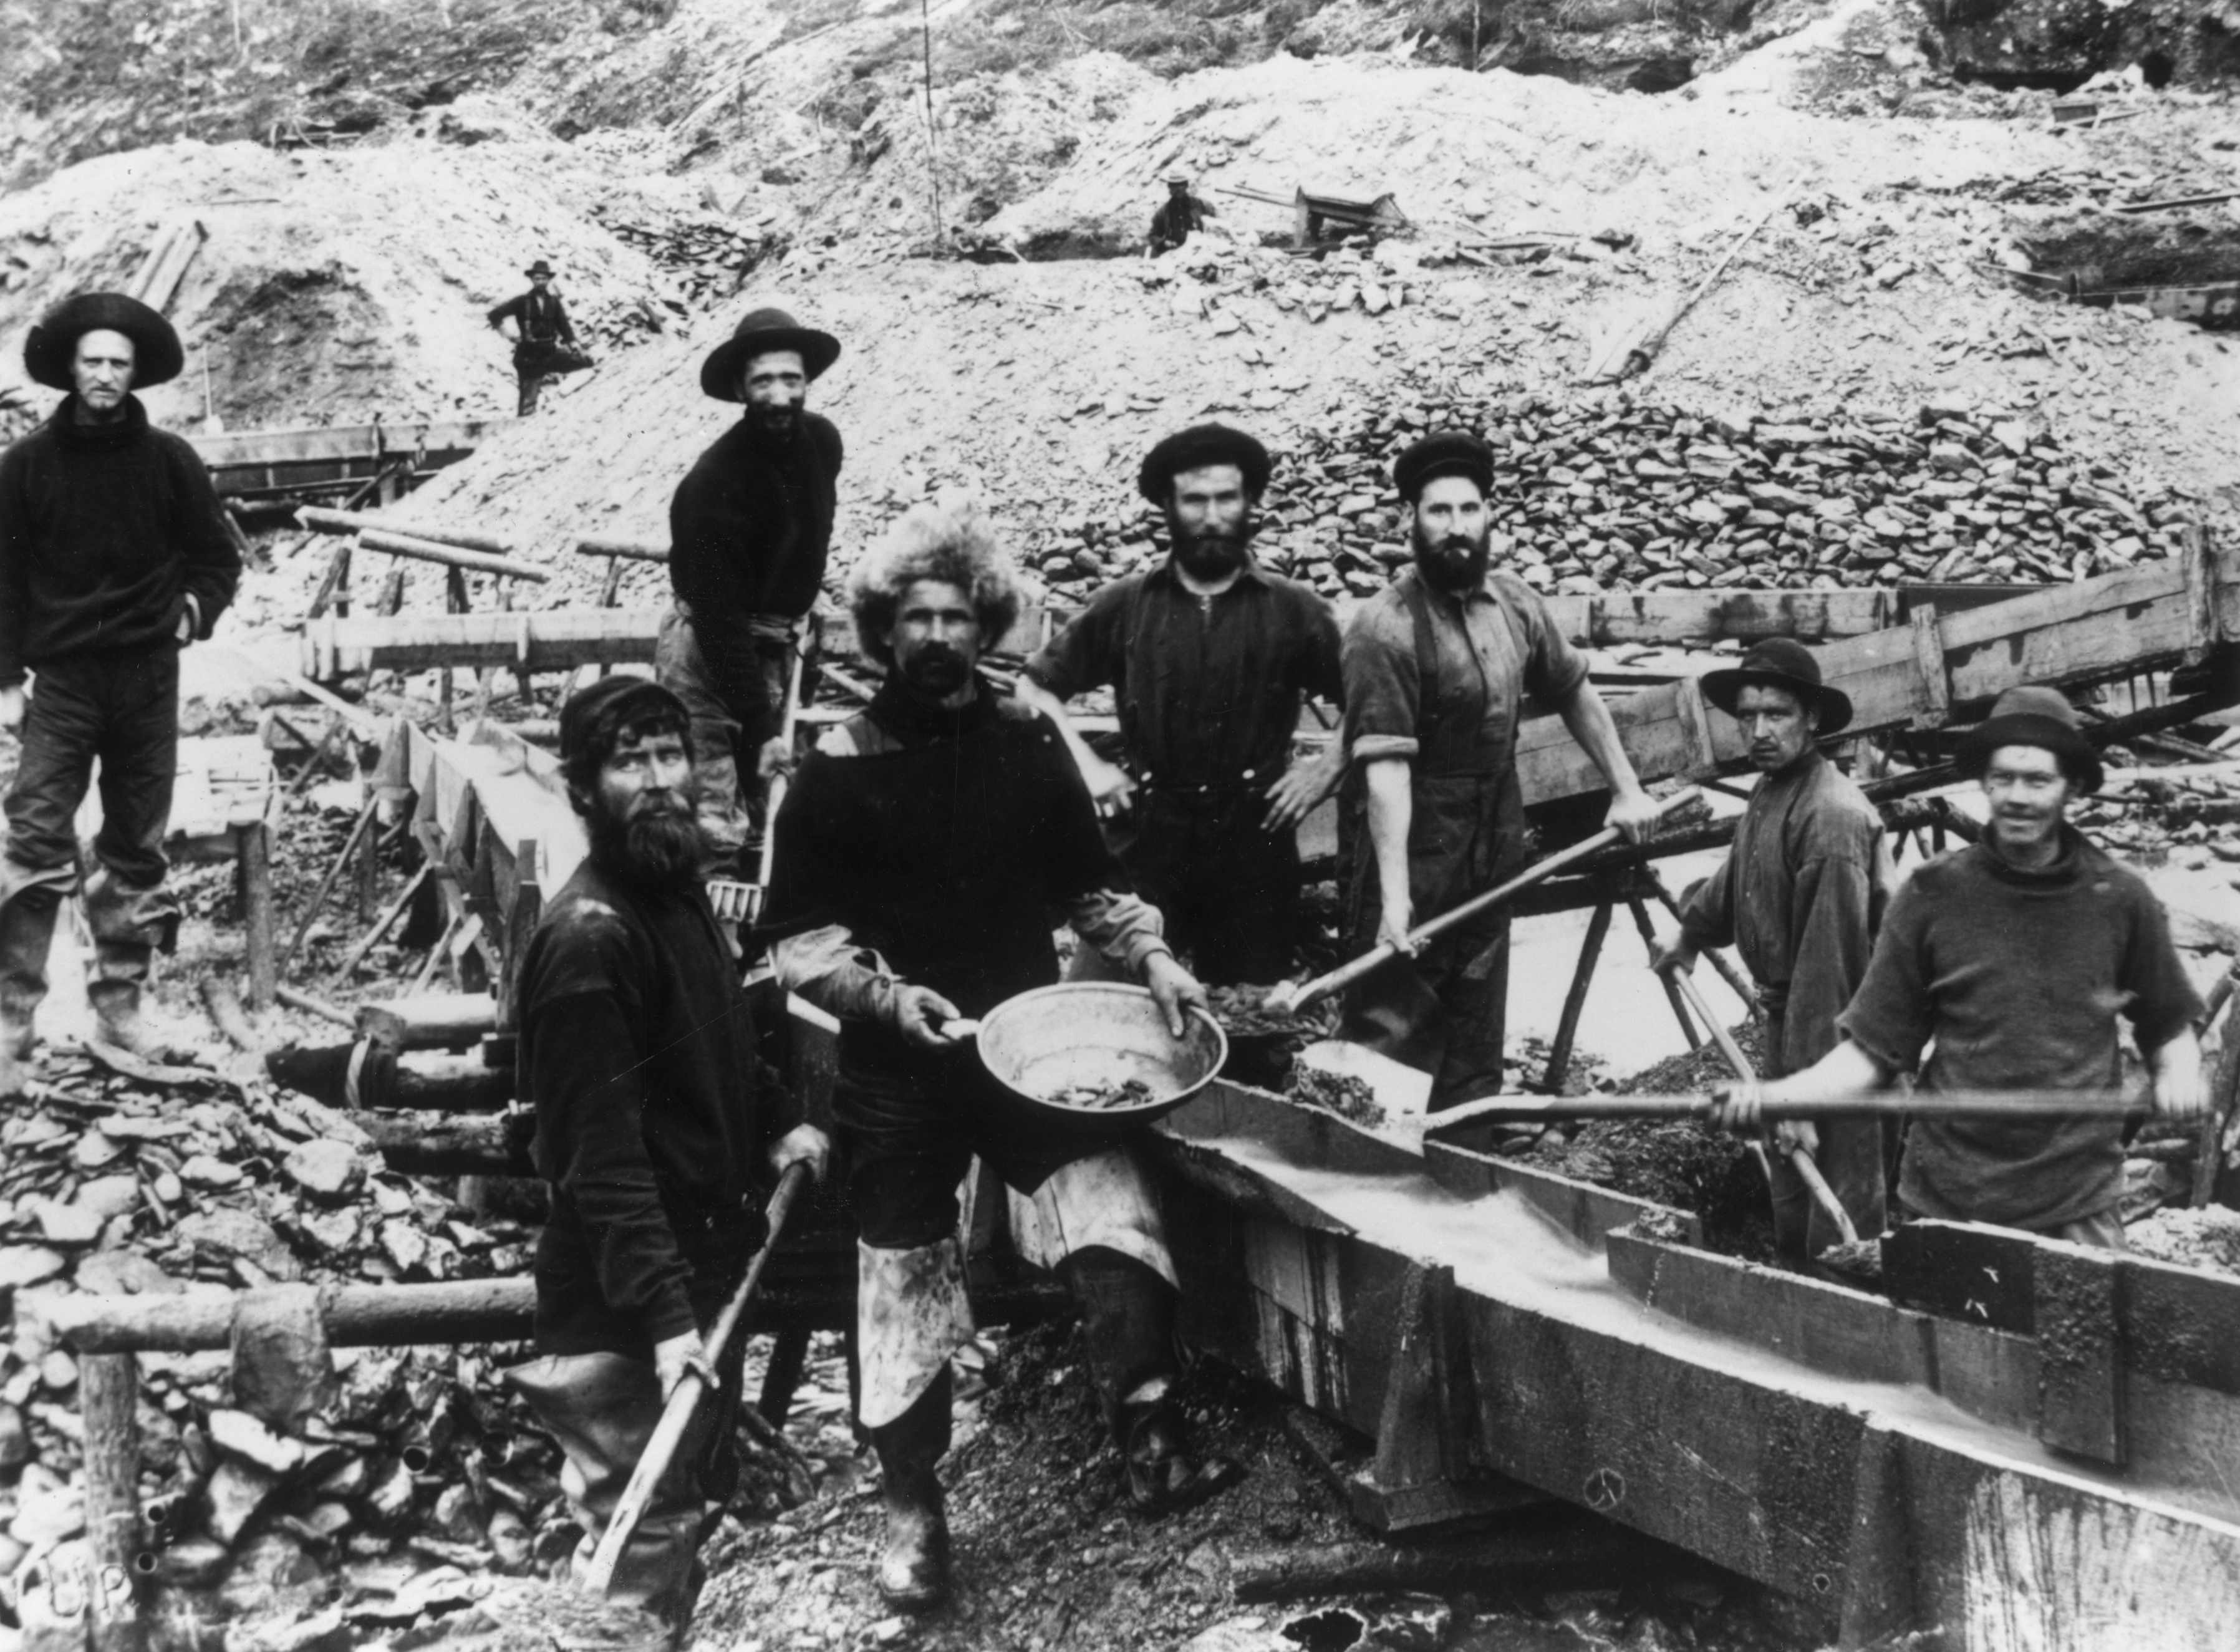 Jubilant miners display a large gold nugget during the Klondike Gold Rush, c1897. (Photo by Hulton Archive/Getty Images)